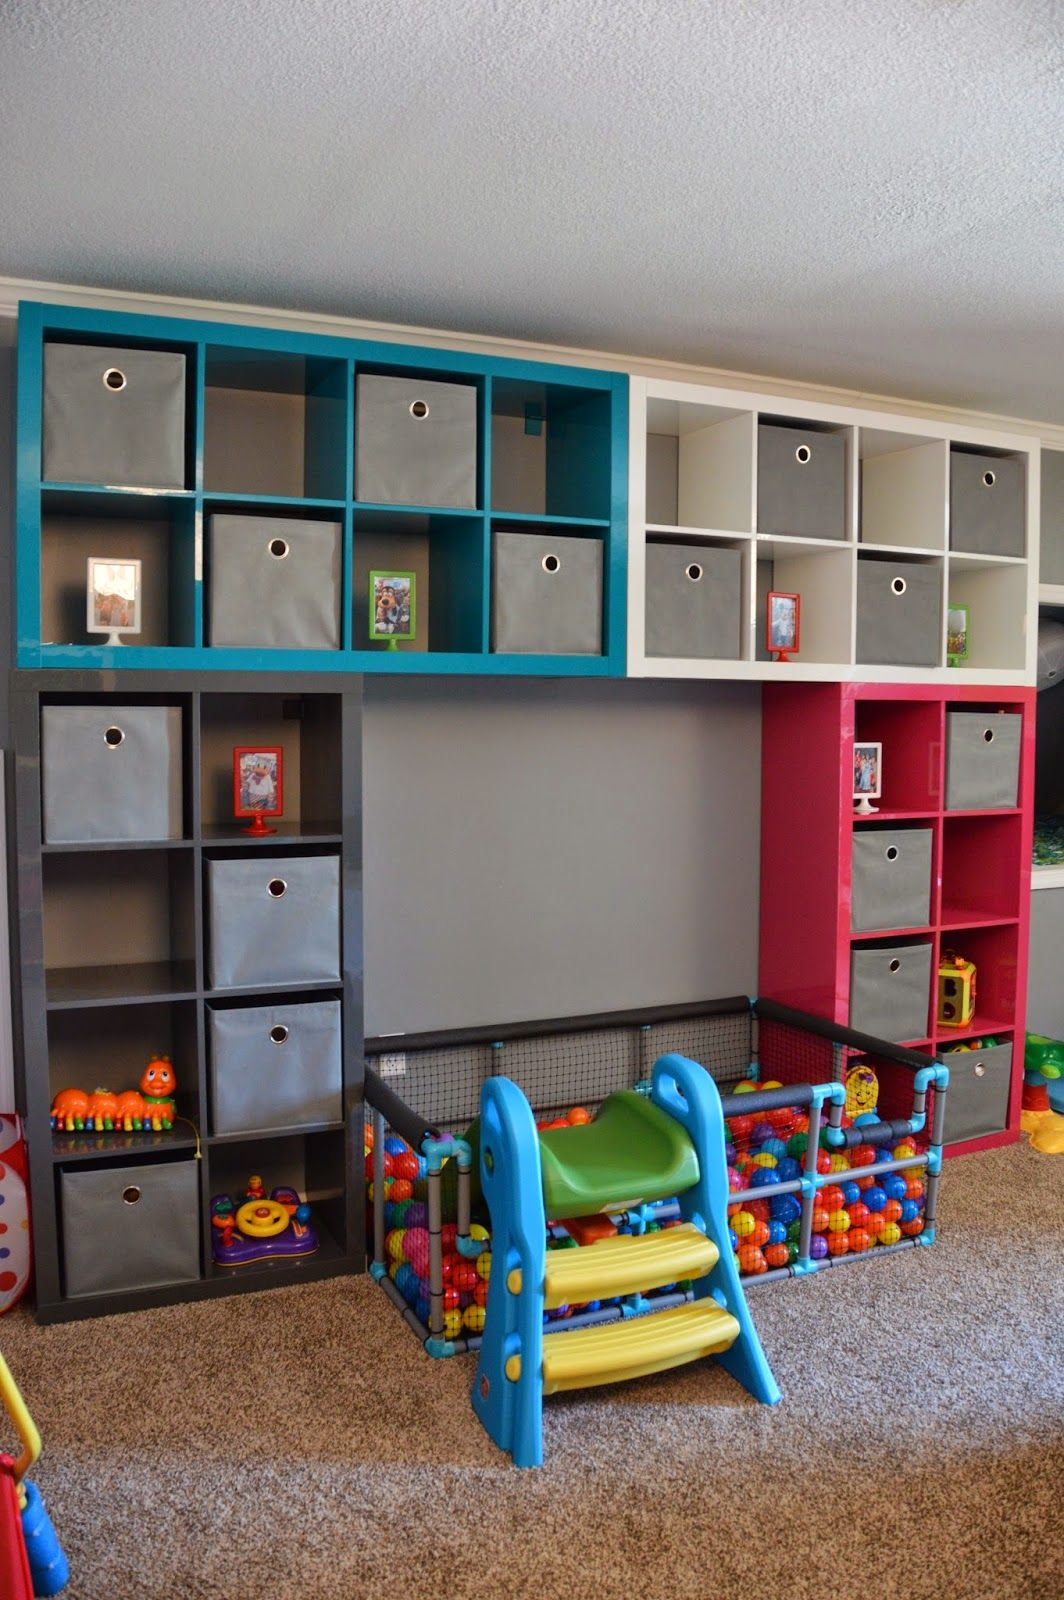 Toy storage ideas diy plans in a small space that your for Living room toy storage ideas